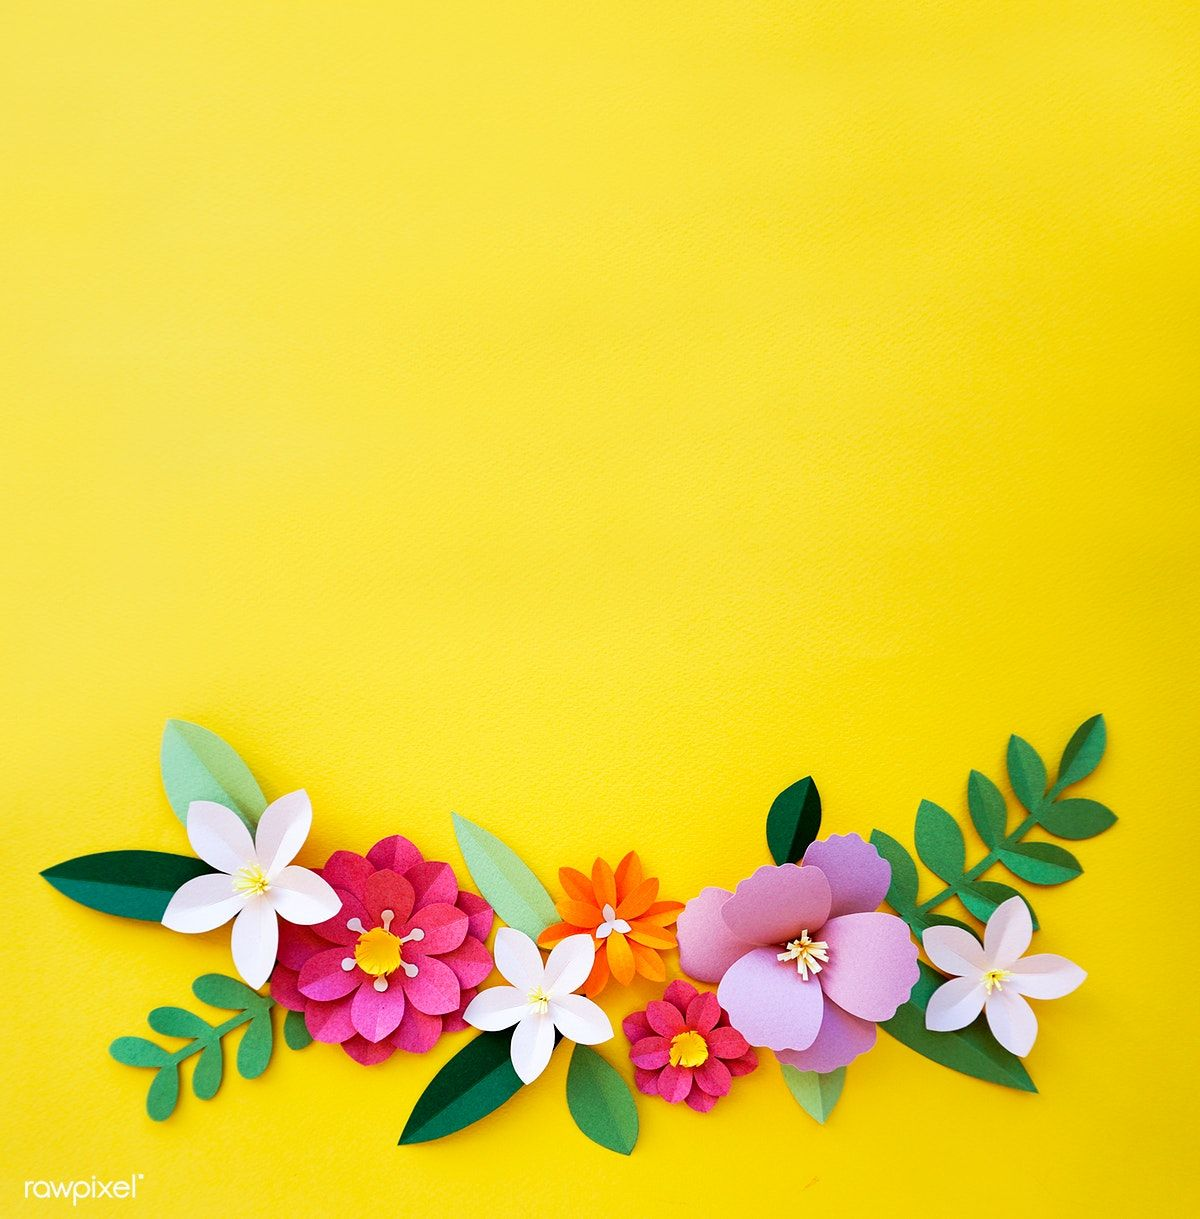 Download Premium Image Of Flowers Handmade Design Papercraft Art 261746 Paper Flower Art Paper Crafts Flower Phone Wallpaper